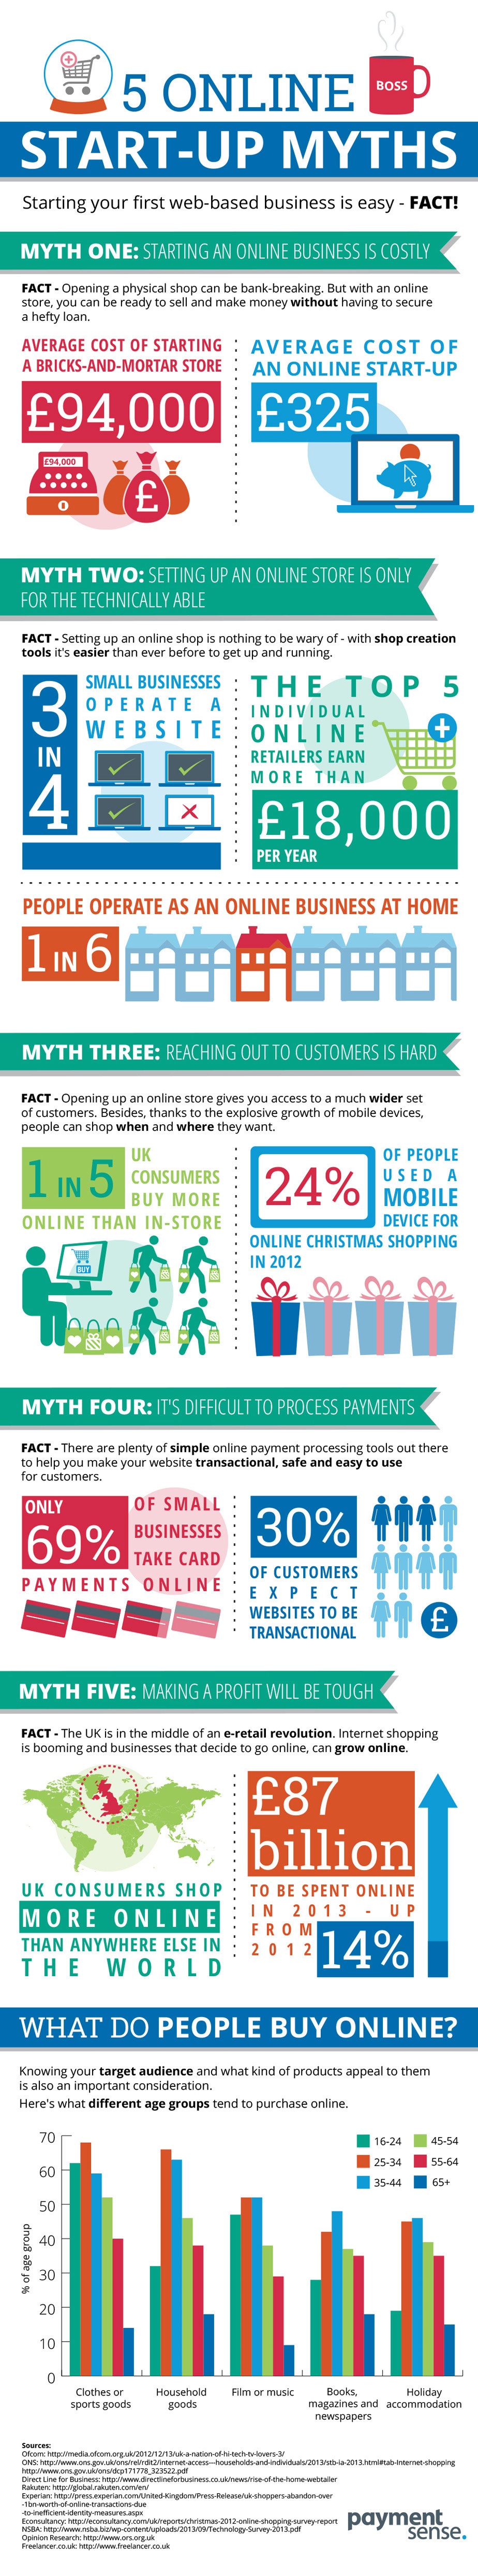 Online Business Myths-Infographic